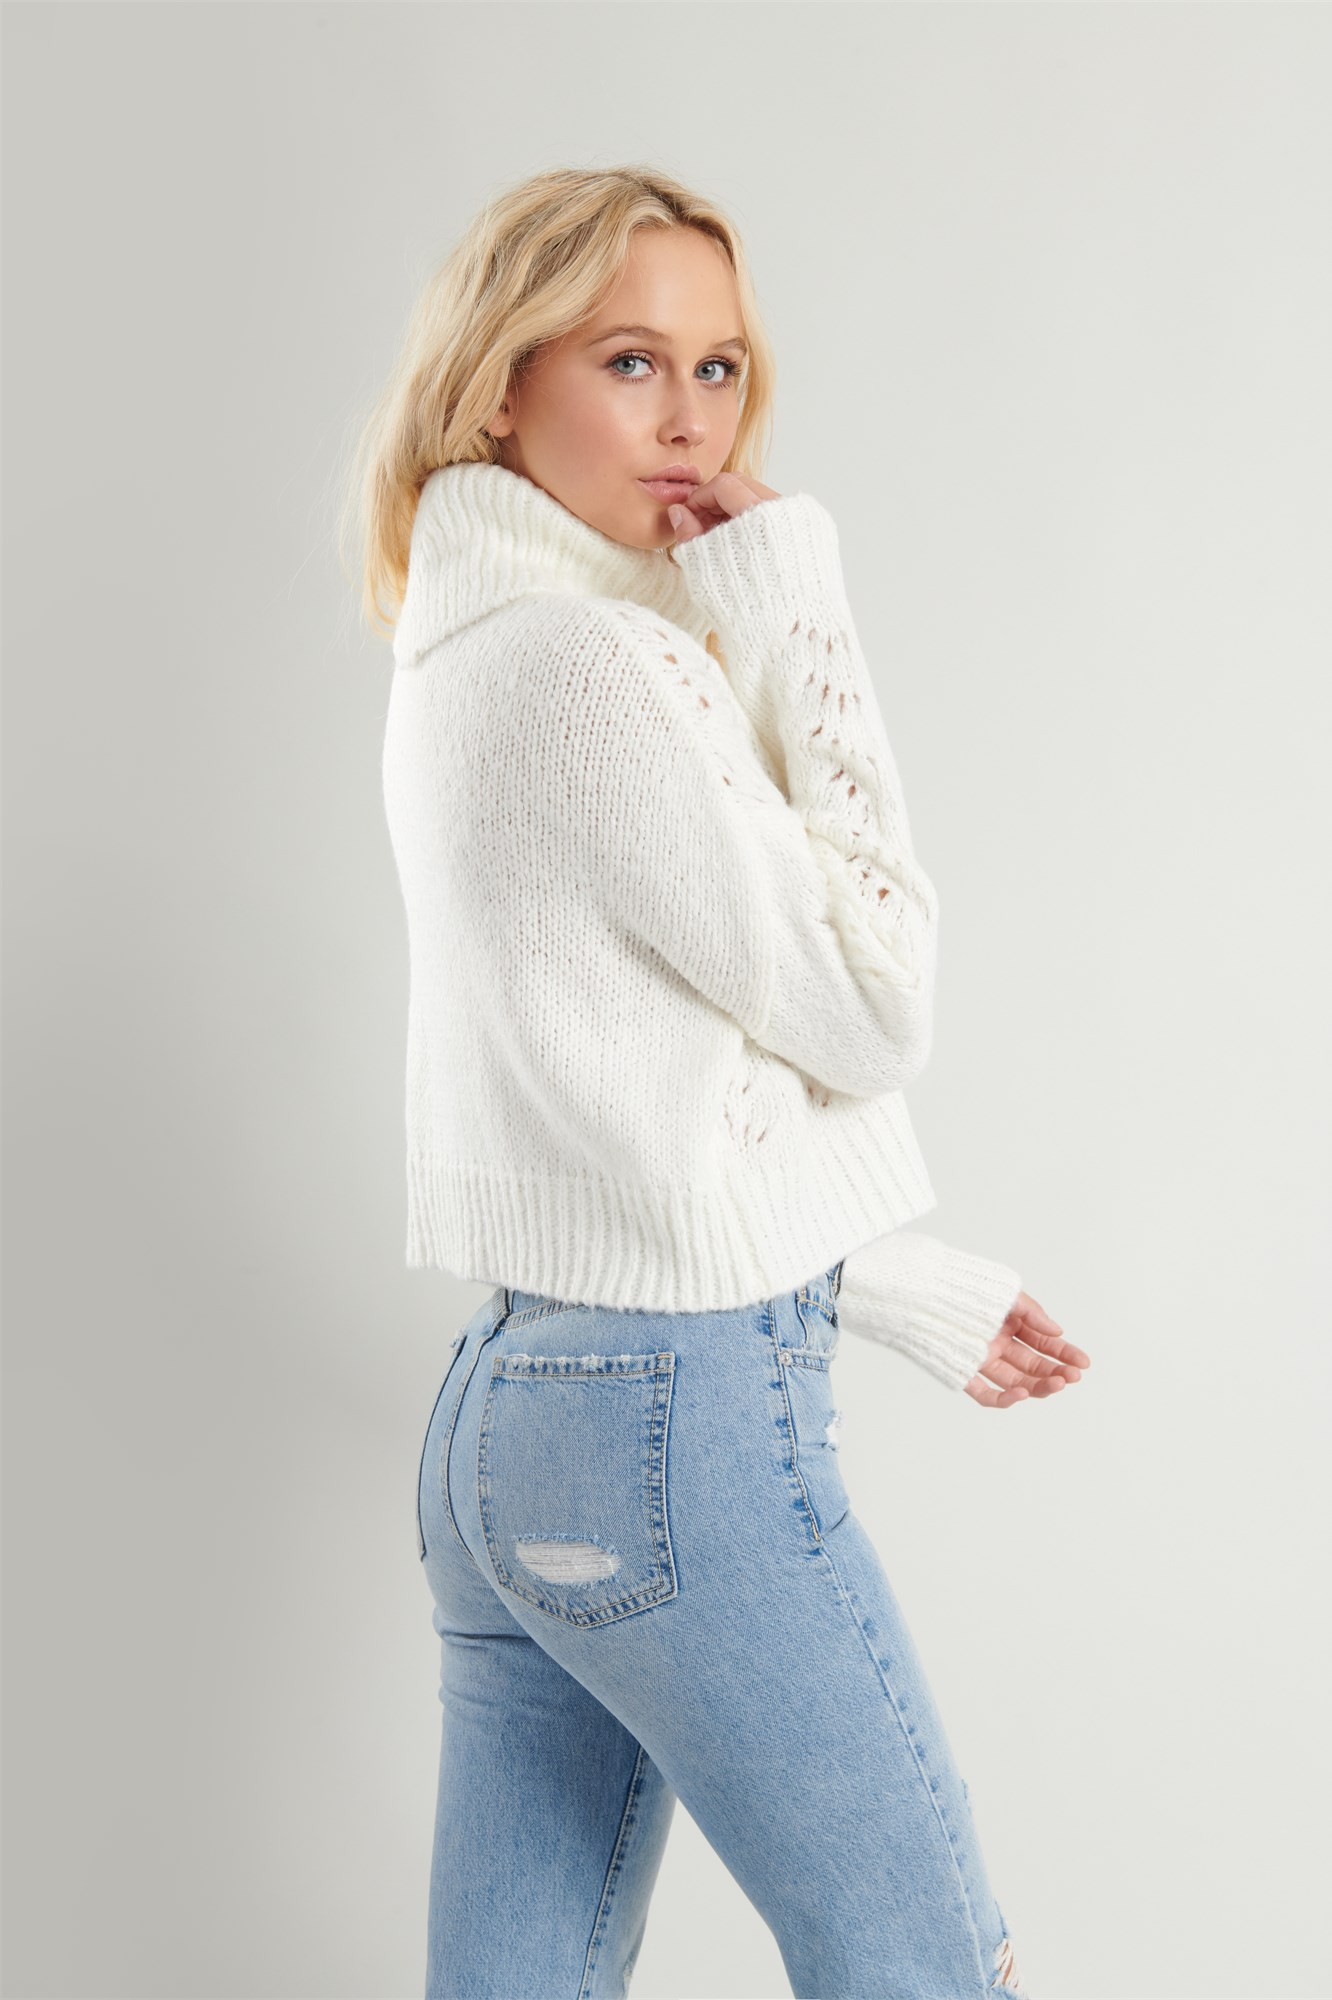 Image 5 of Pointelle Turtleneck Sweater